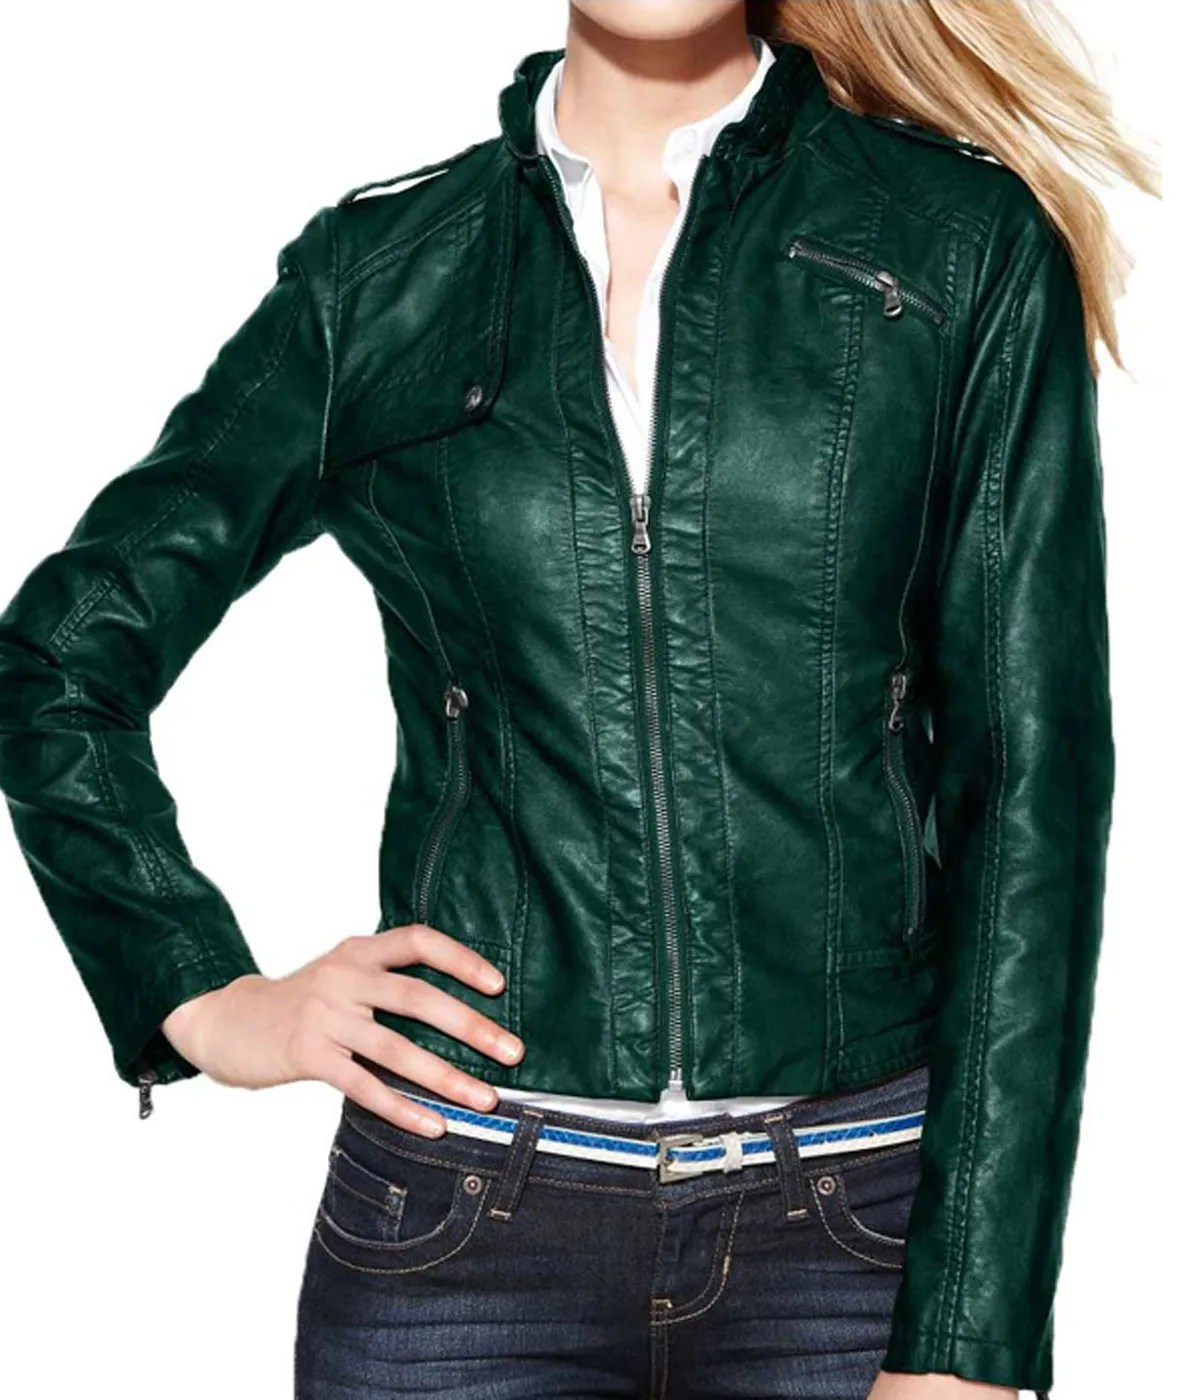 womens-green-motorcycle-leather-jacket